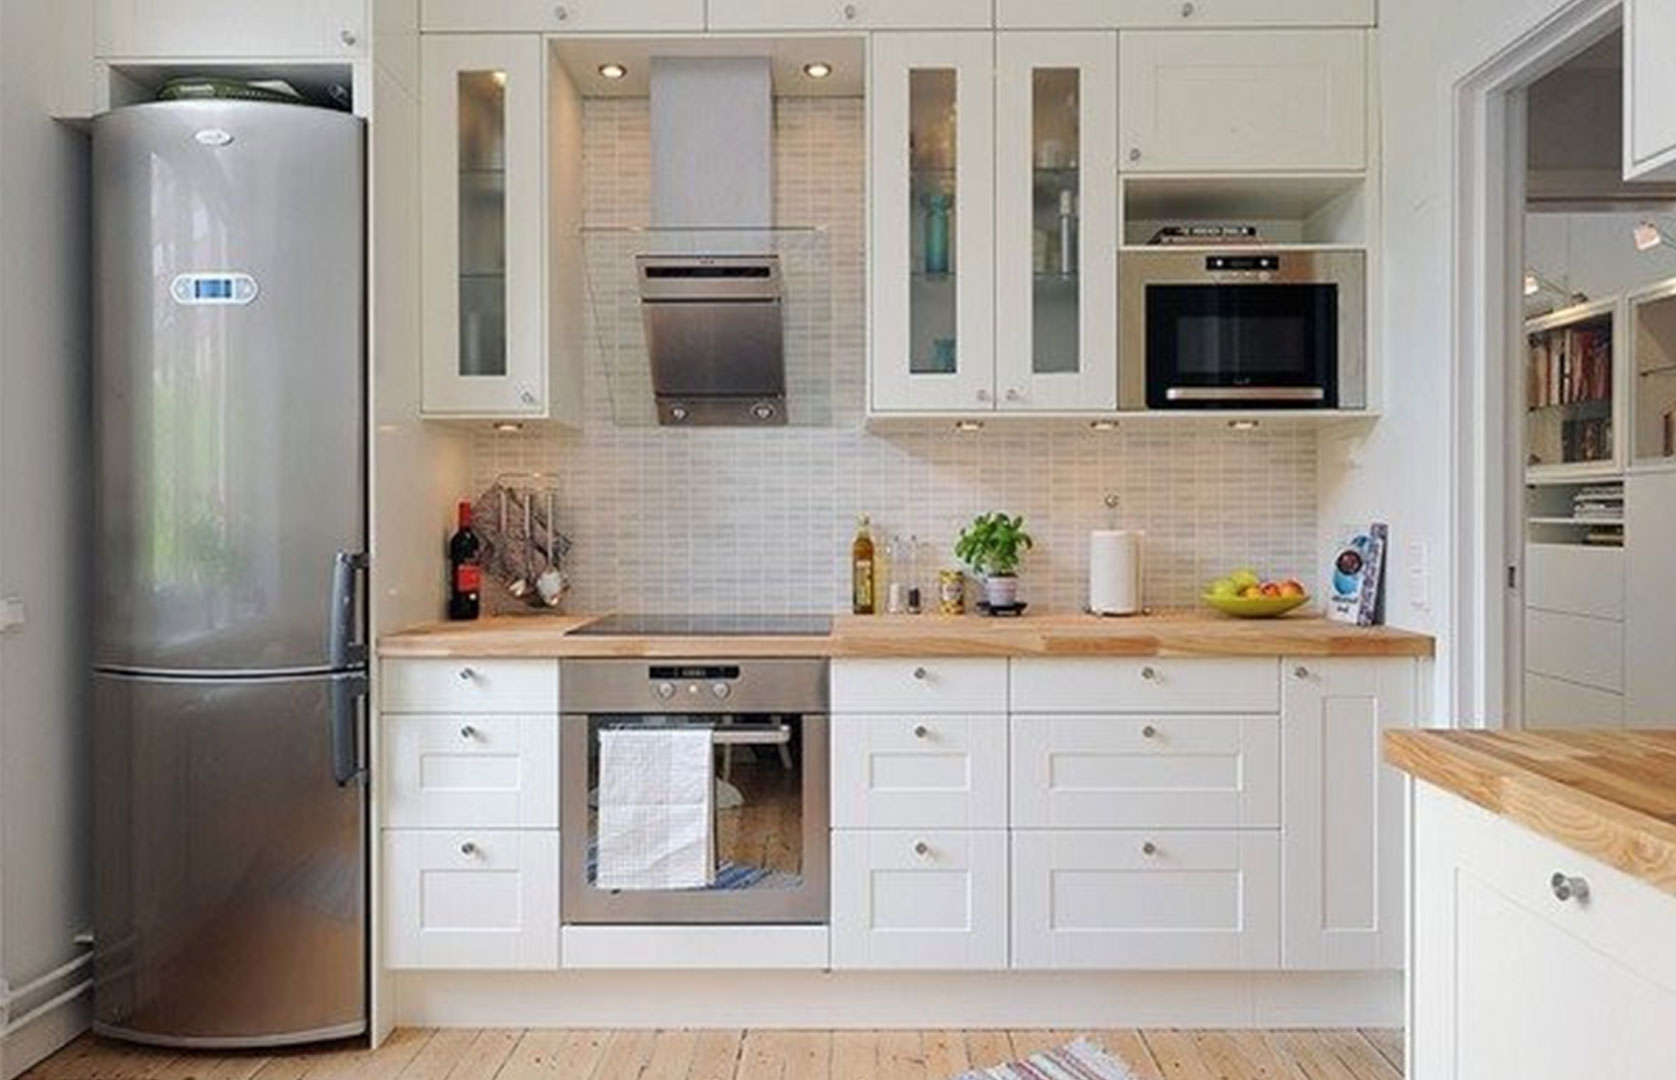 Upper Kitchen Cabinet For Microwave